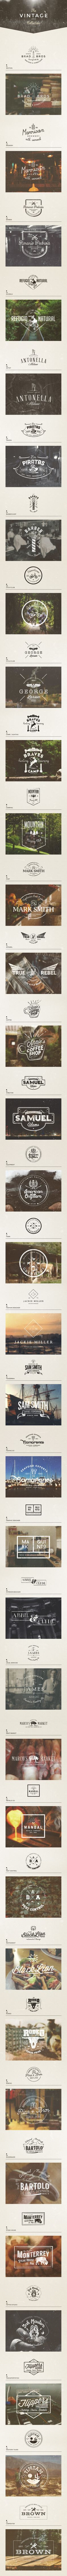 Vintage Logos Collection on Behance #branding #logo #vintage